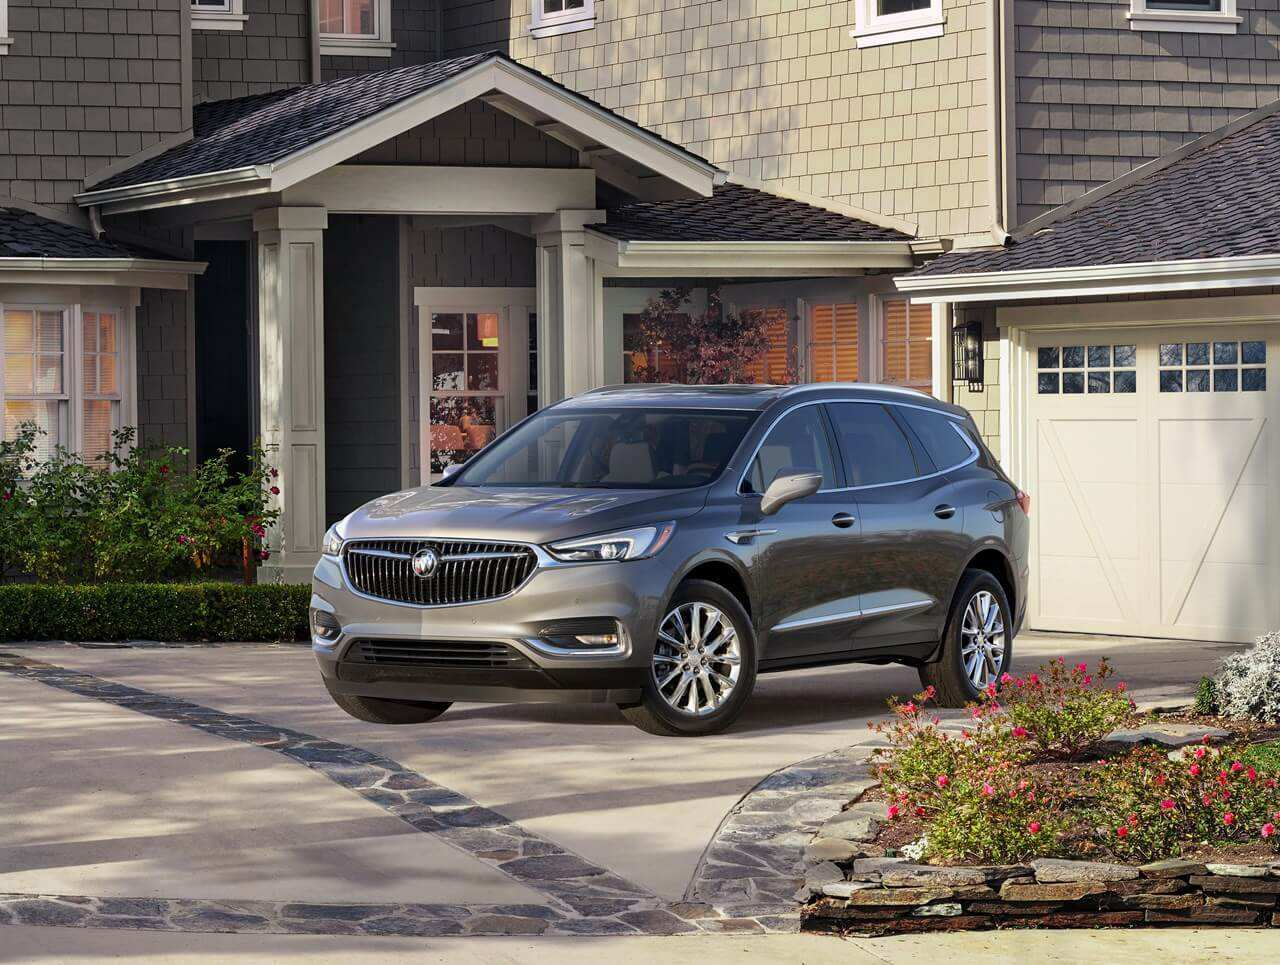 49 Concept of 2020 Buick Enclave Colors Performance for 2020 Buick Enclave Colors